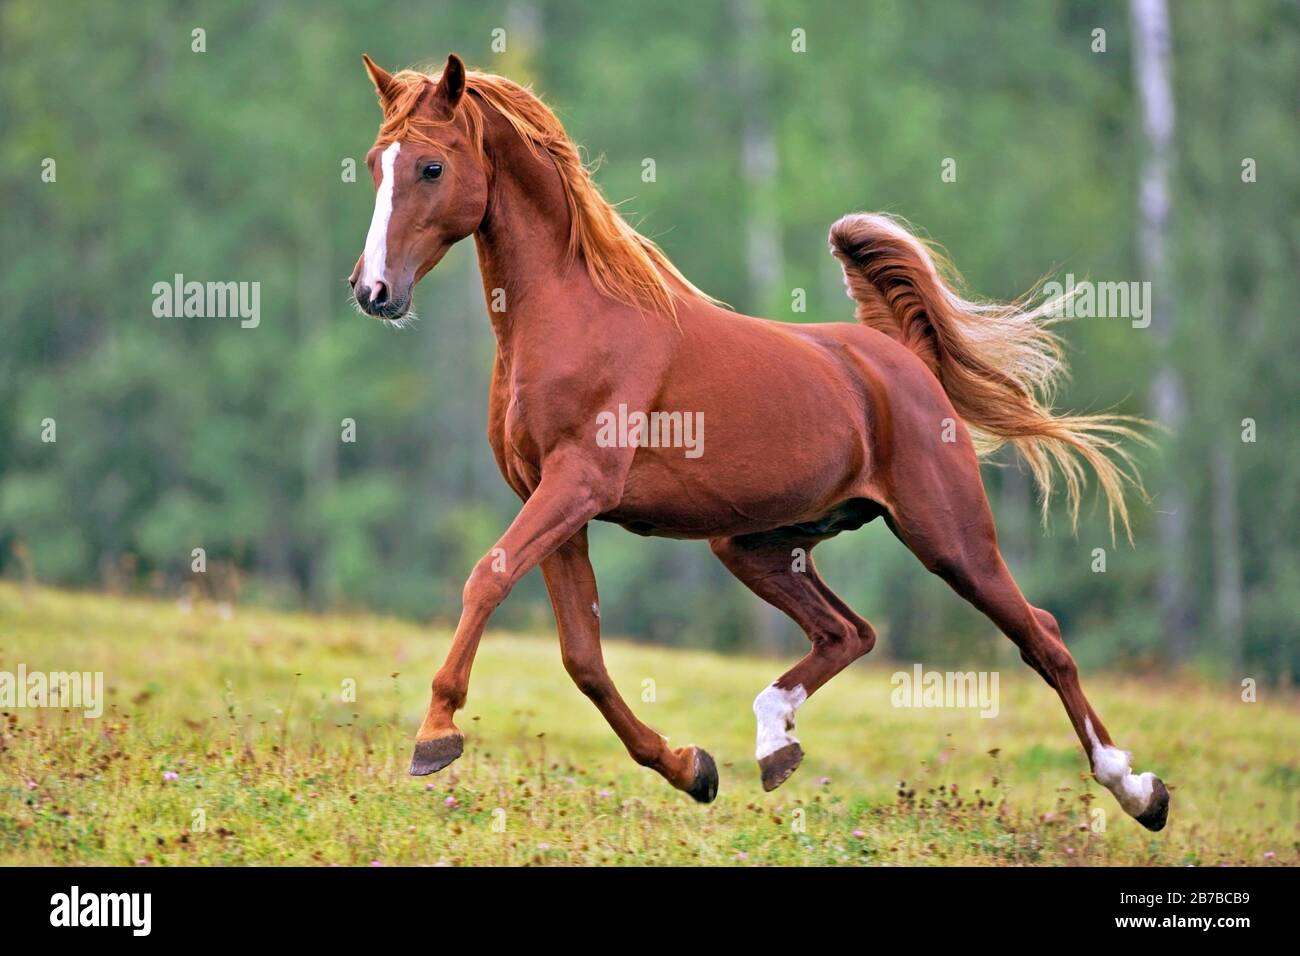 Beautiful Chestnut Arabian Stallion Running On Meadow Showing Off Stock Photo Alamy